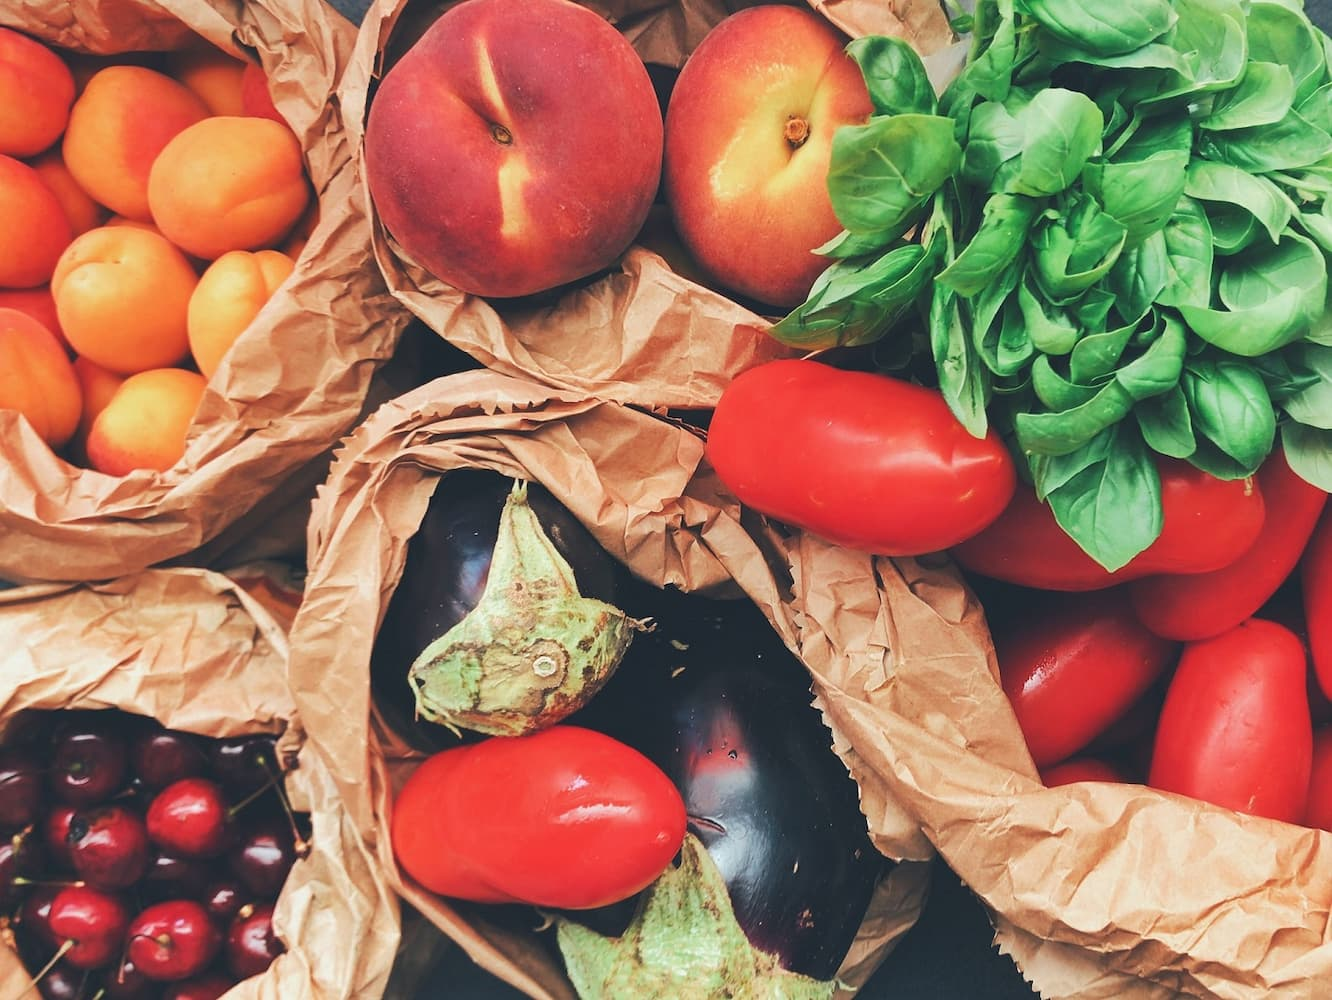 Functional foods like fruits and vegetables